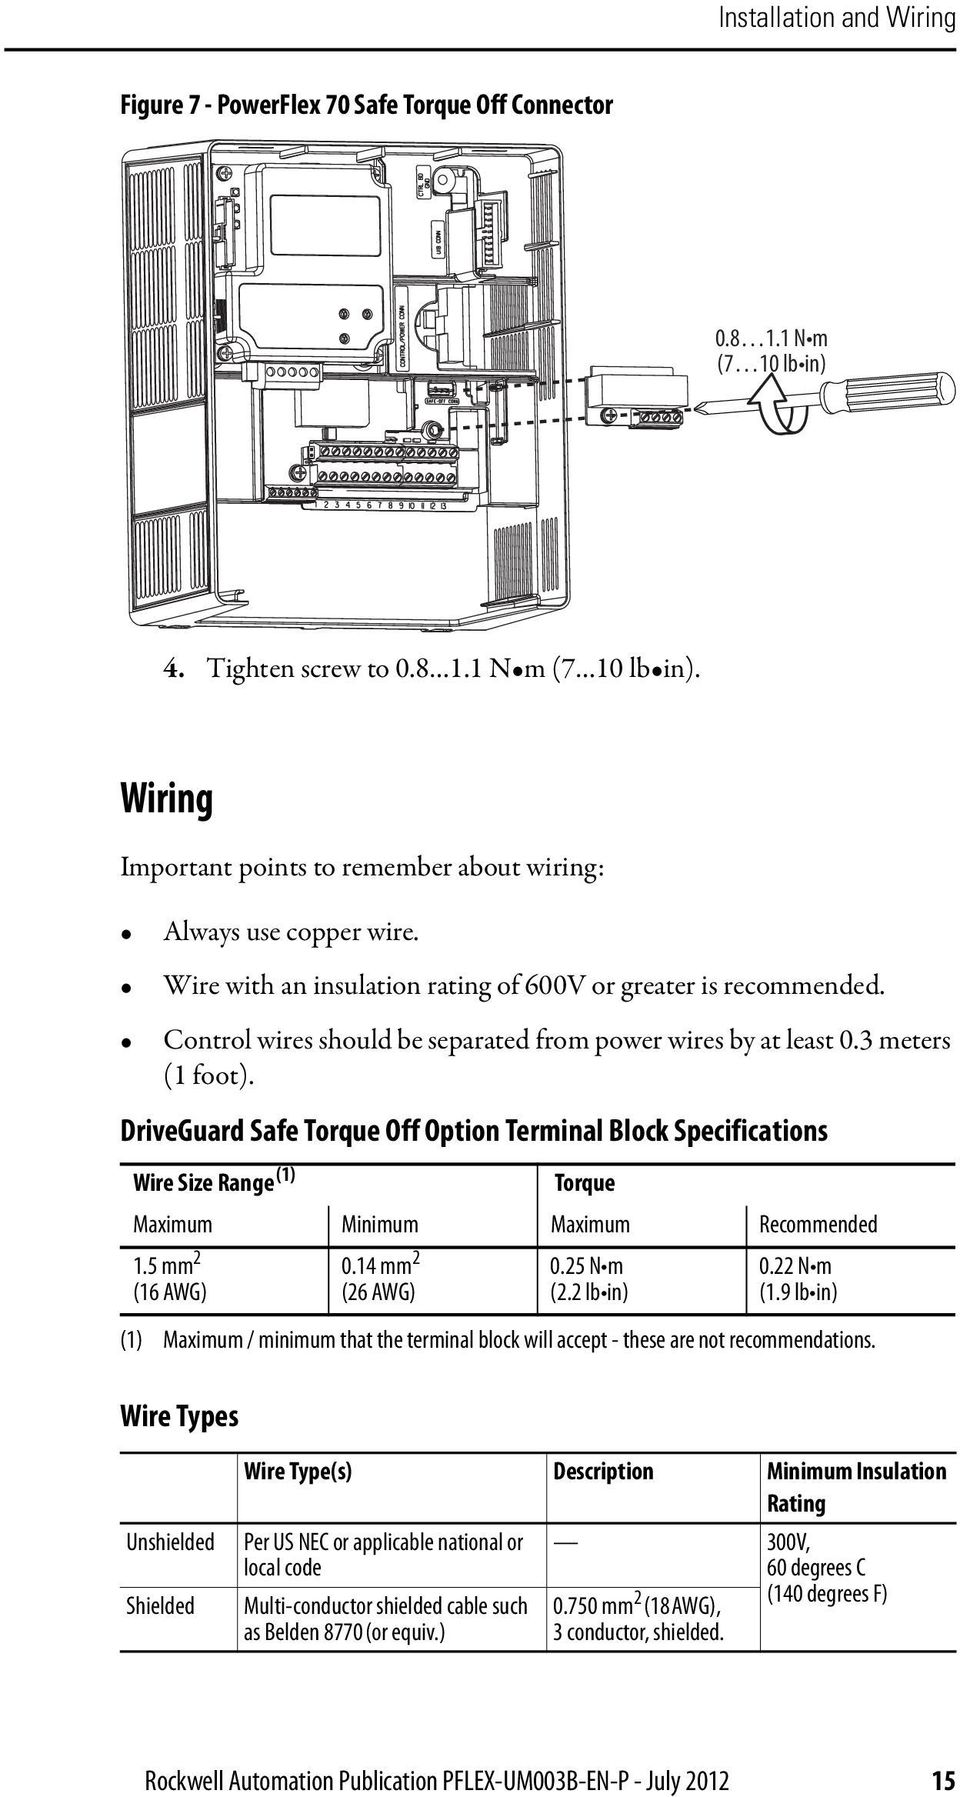 Safe Torque Off Option Series B For Powerflex 40p And 70 Wiring Diagram Driveguard Terminal Block Specifications Wire Size Range 1